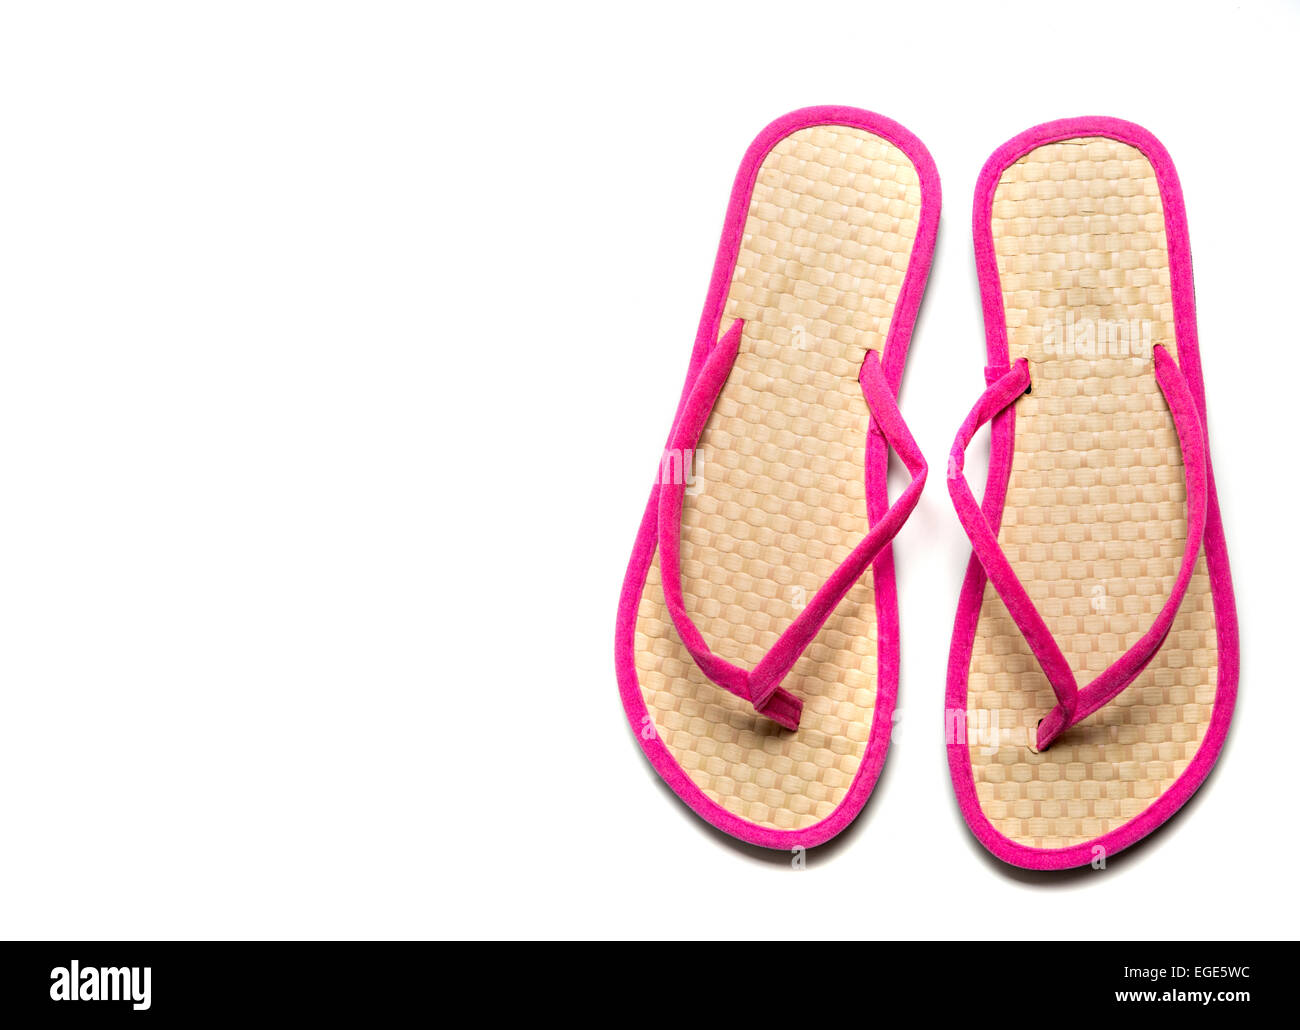 Straw and pink flip-flop sandals on a white background with copy space - Stock Image